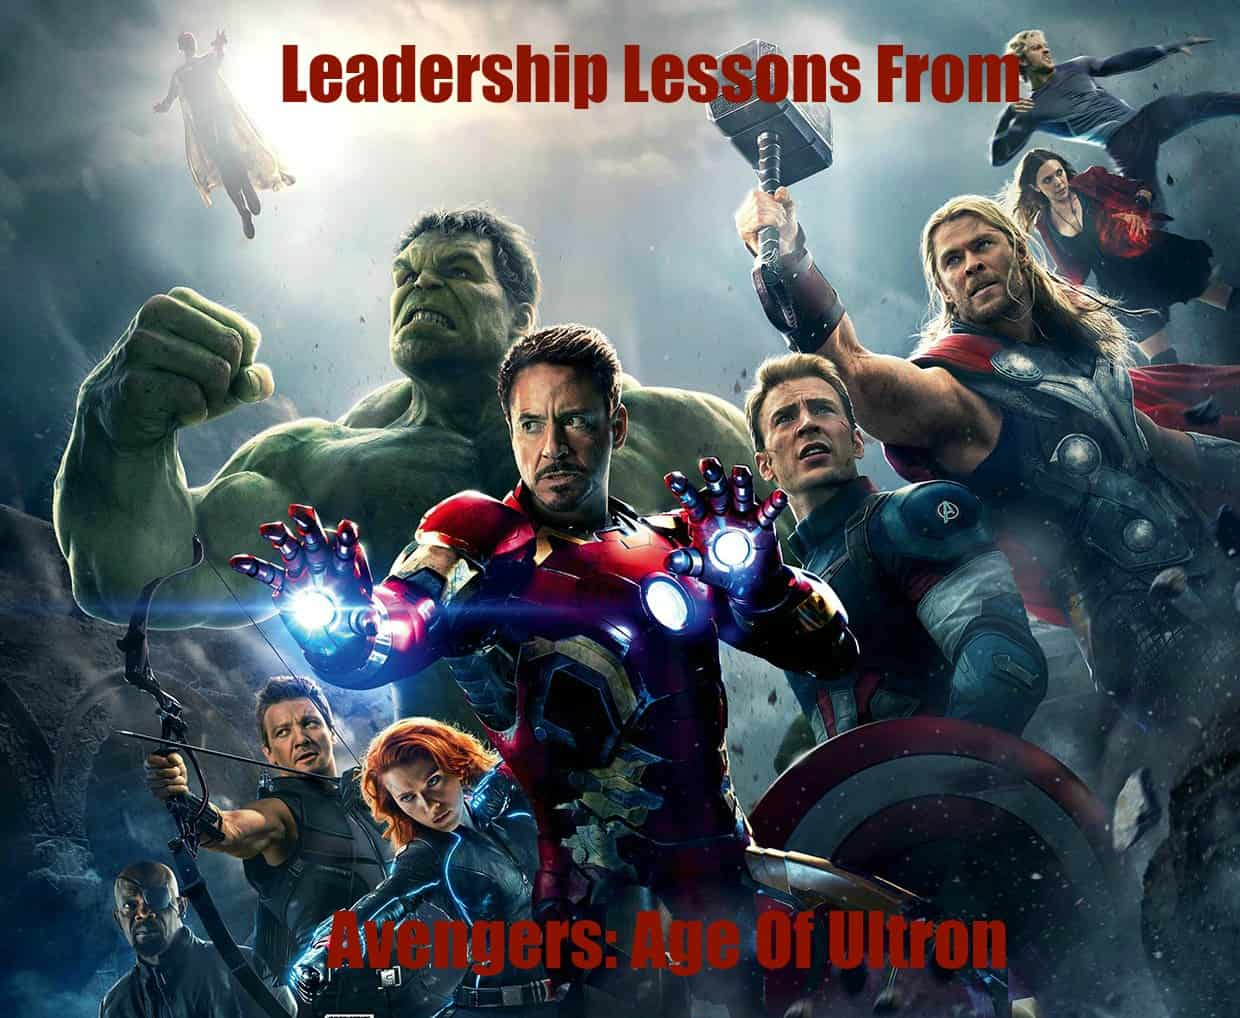 leadership lessons and quotes from Marvel's Avengers: Age Of Ultron